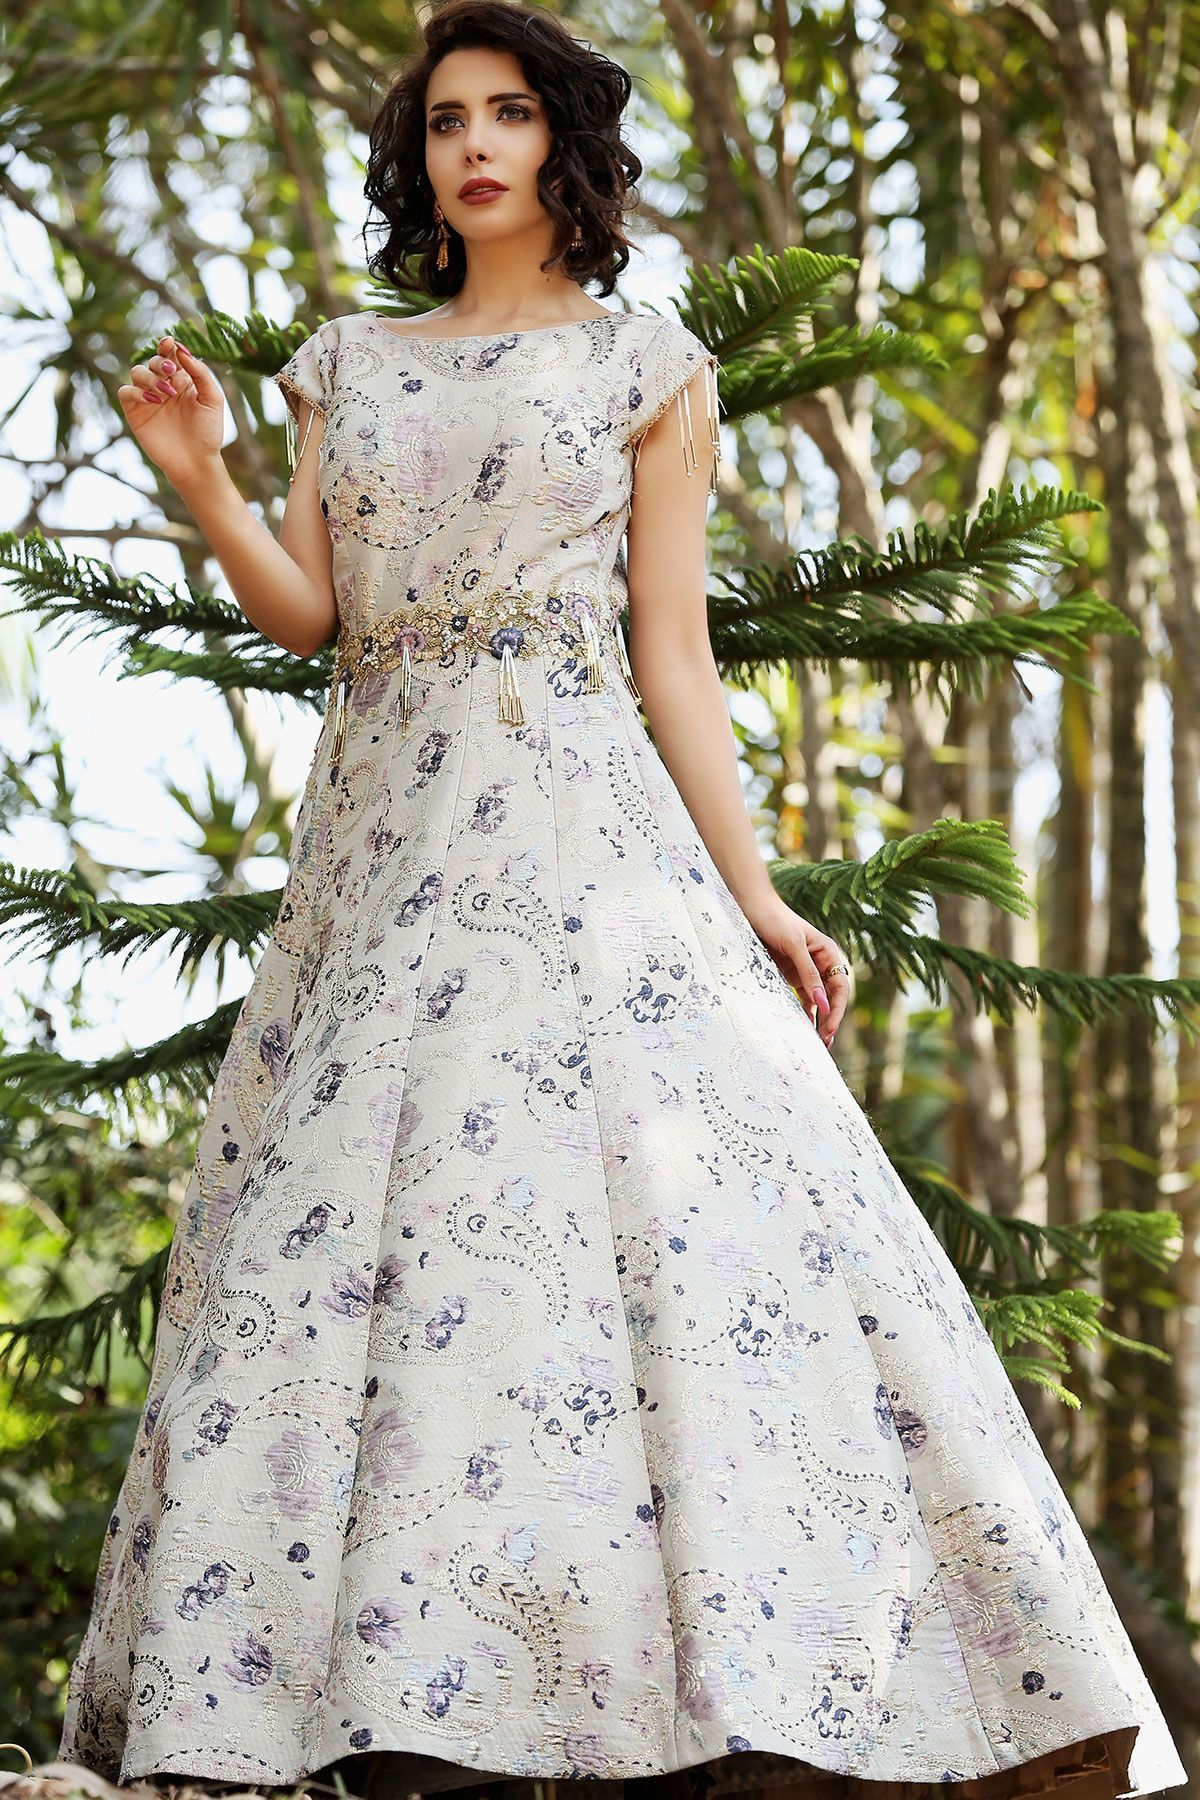 Buy Powder Blue Bead Embroidered Italian Evening Gown